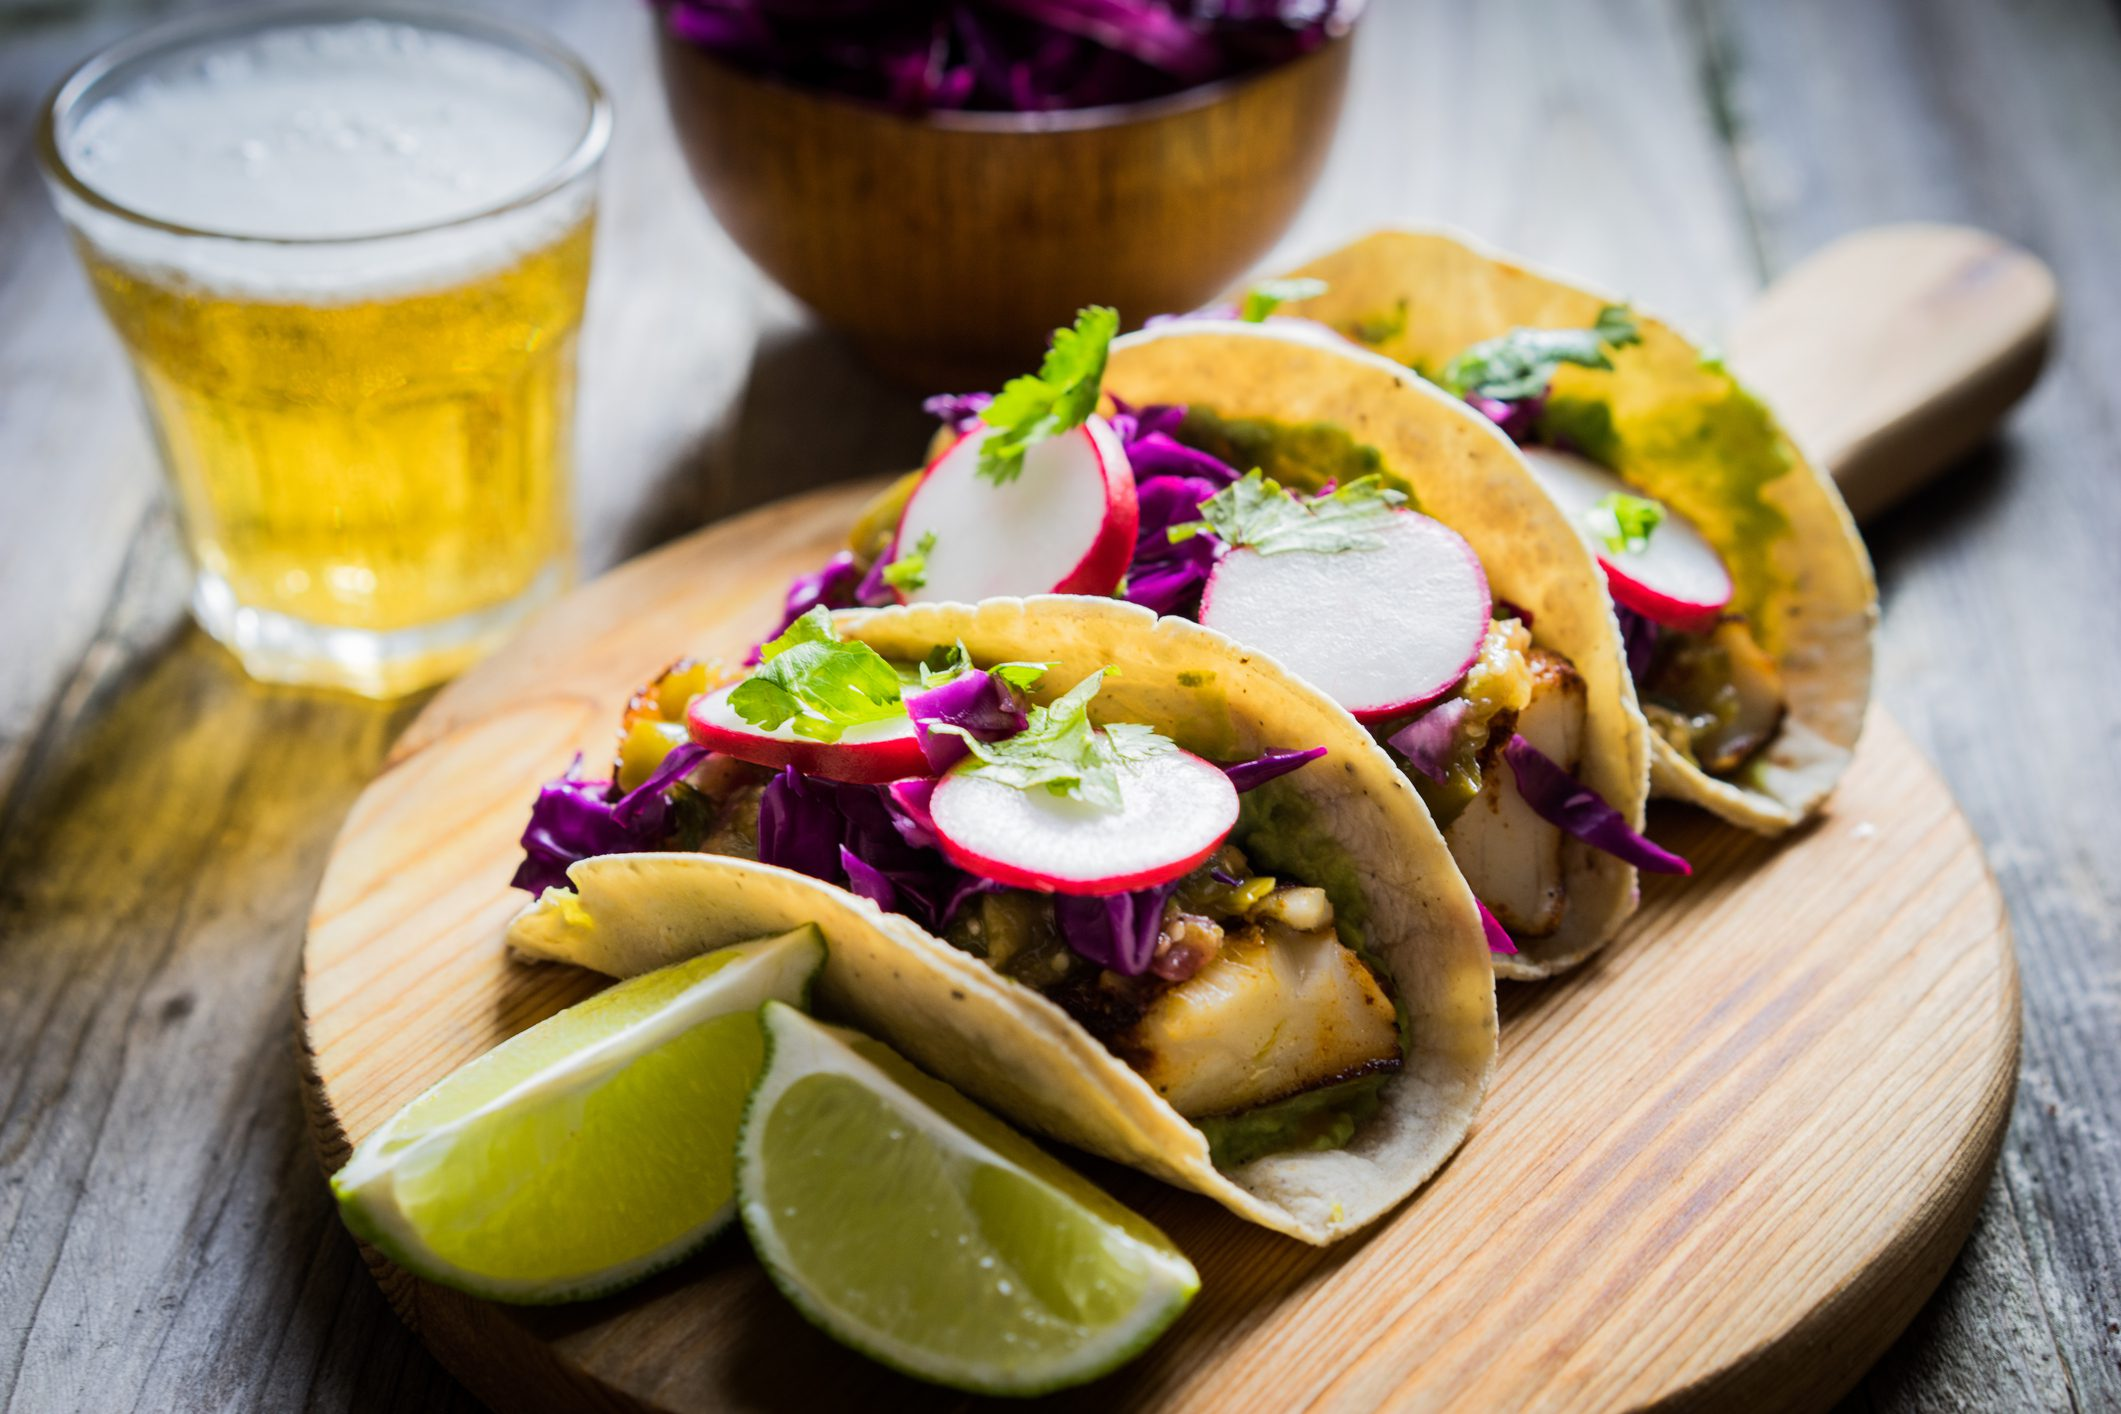 Street tacos with small glass of beer